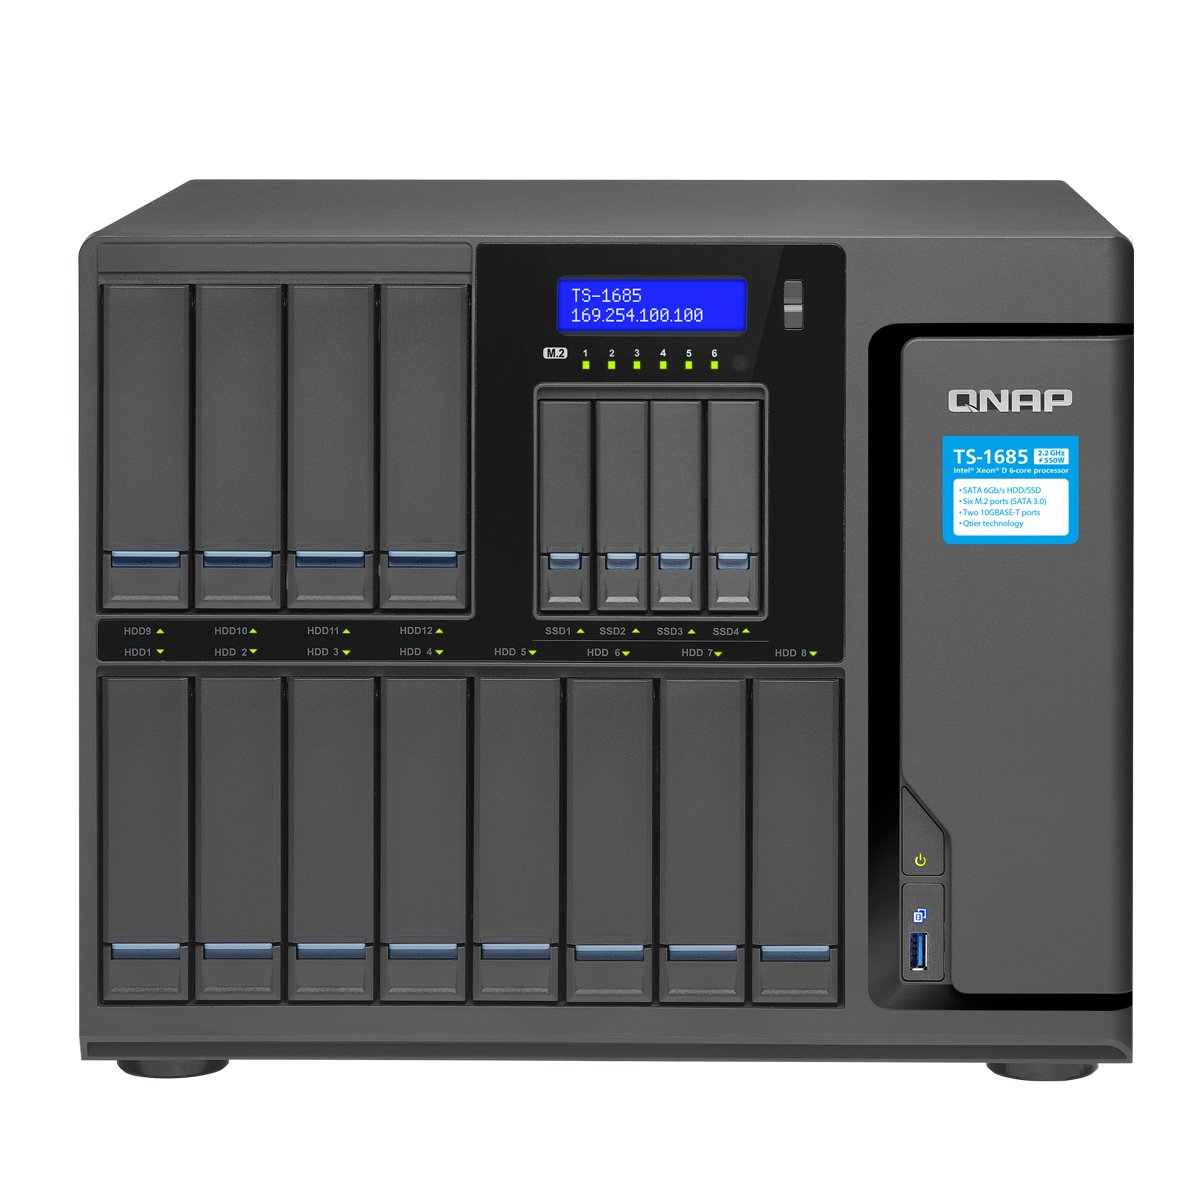 Qnap TS-1685-D1531-64G-US 12 Bay High-Capacity 10GbE iSCSI NAS by QNAP